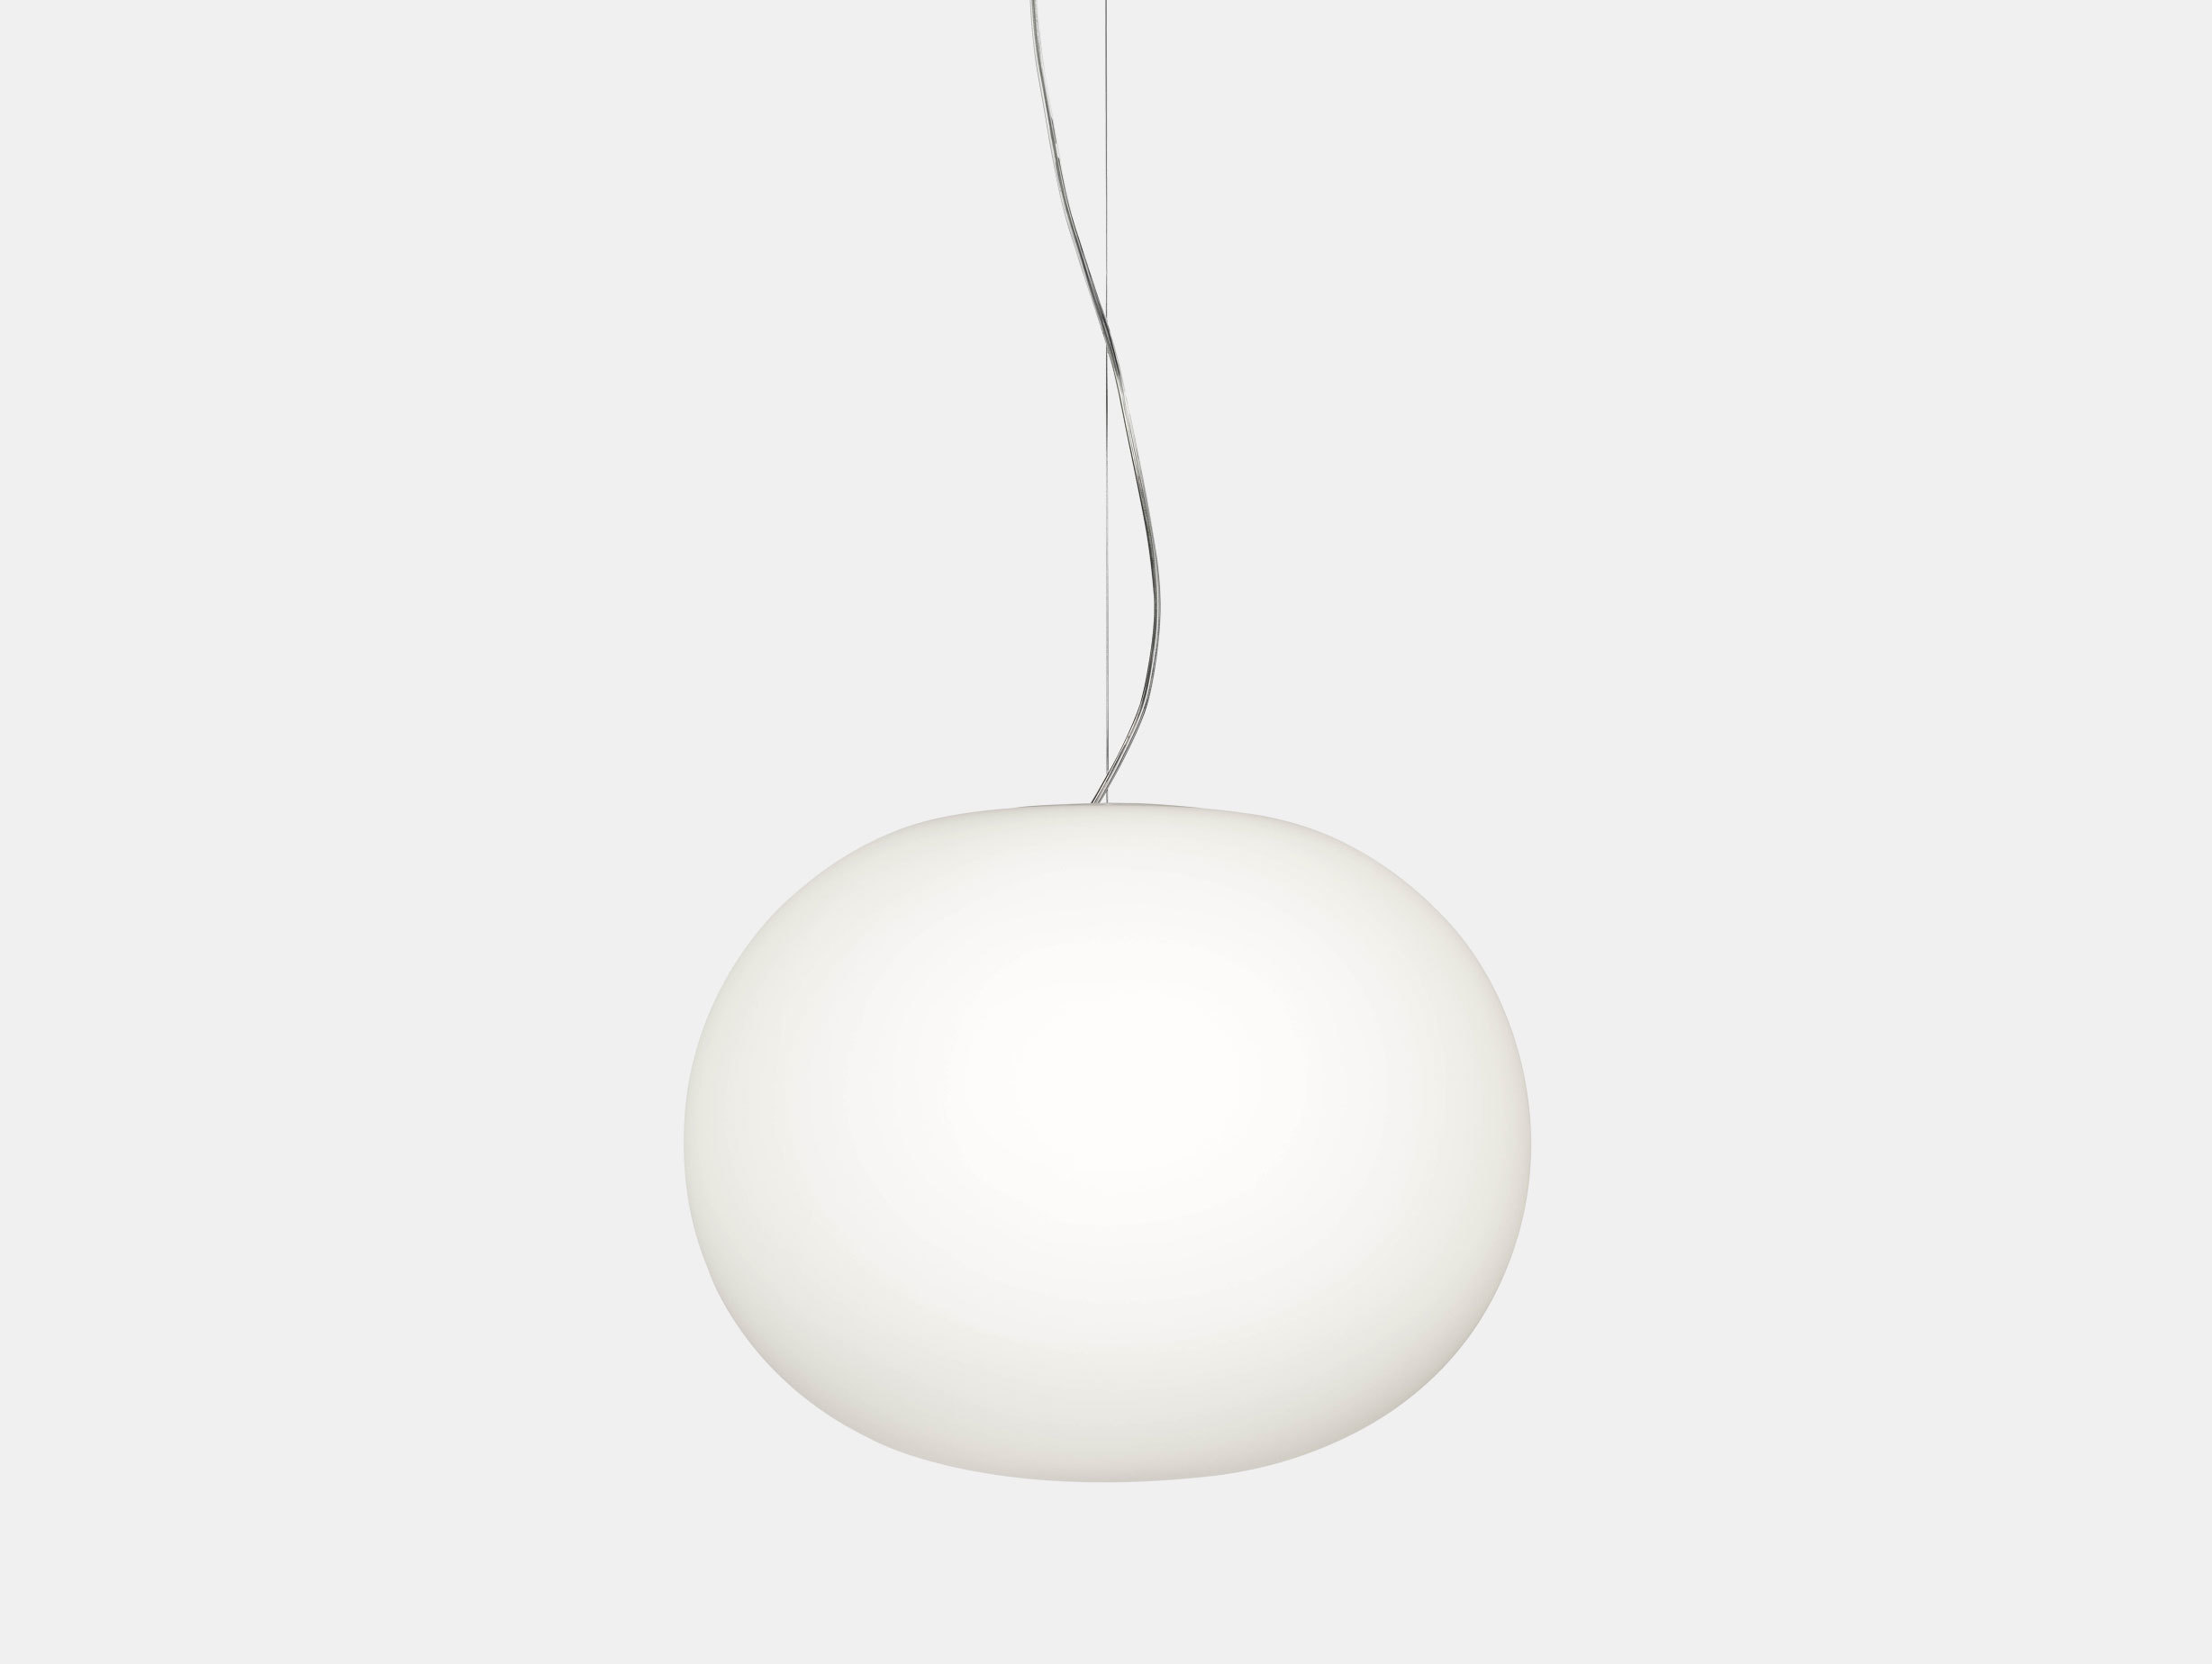 Glo-Ball Suspension Light image 1